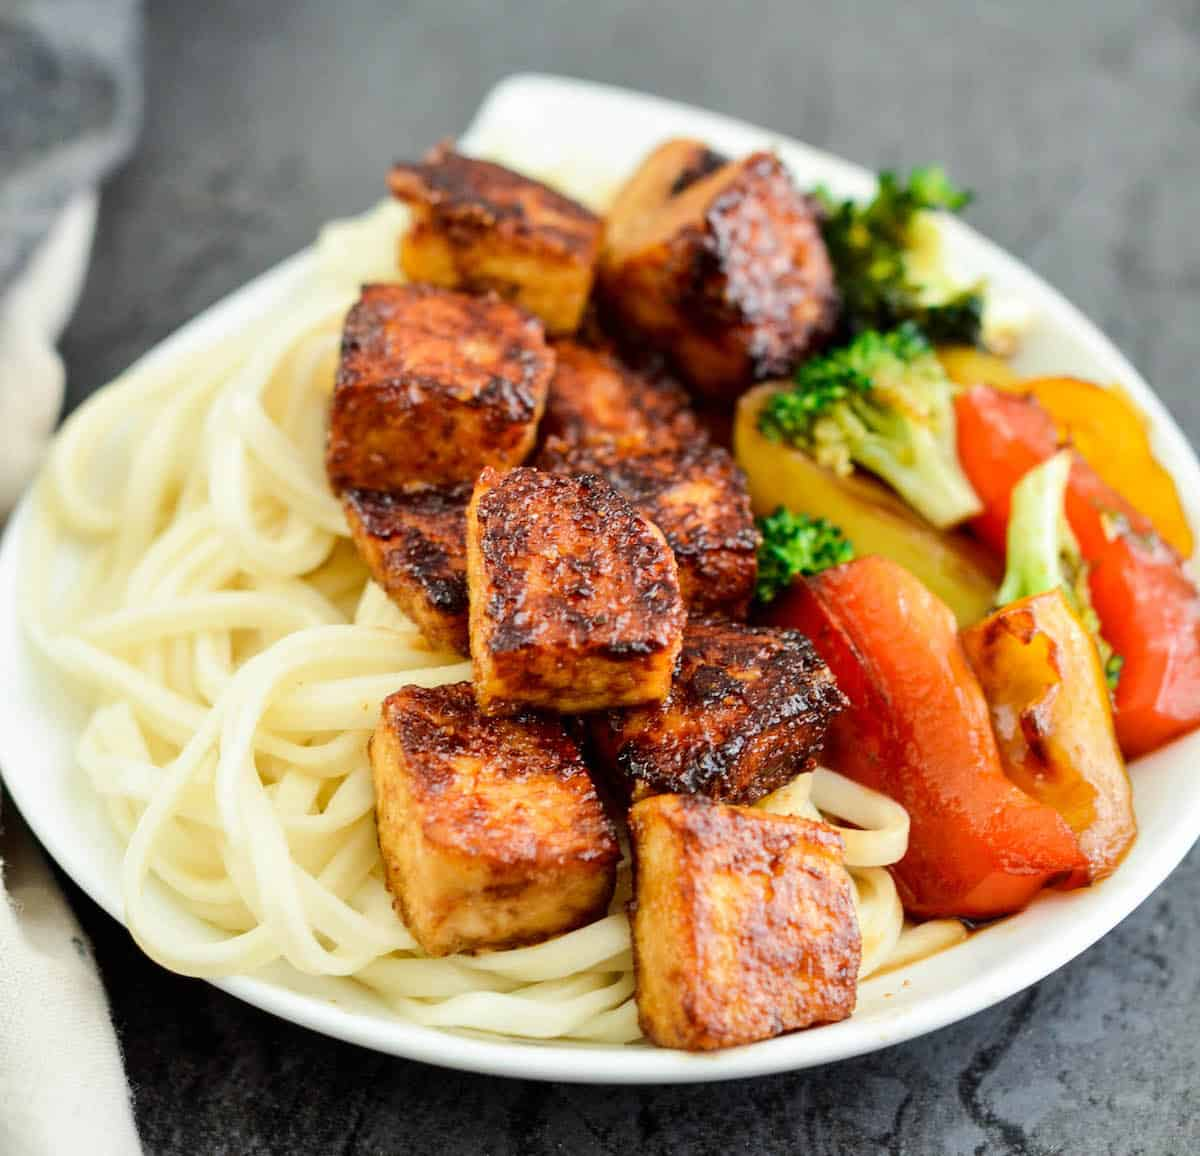 Side view of crispy tofu with hoisin sauce on a plate with noodles and stir fried veggies.